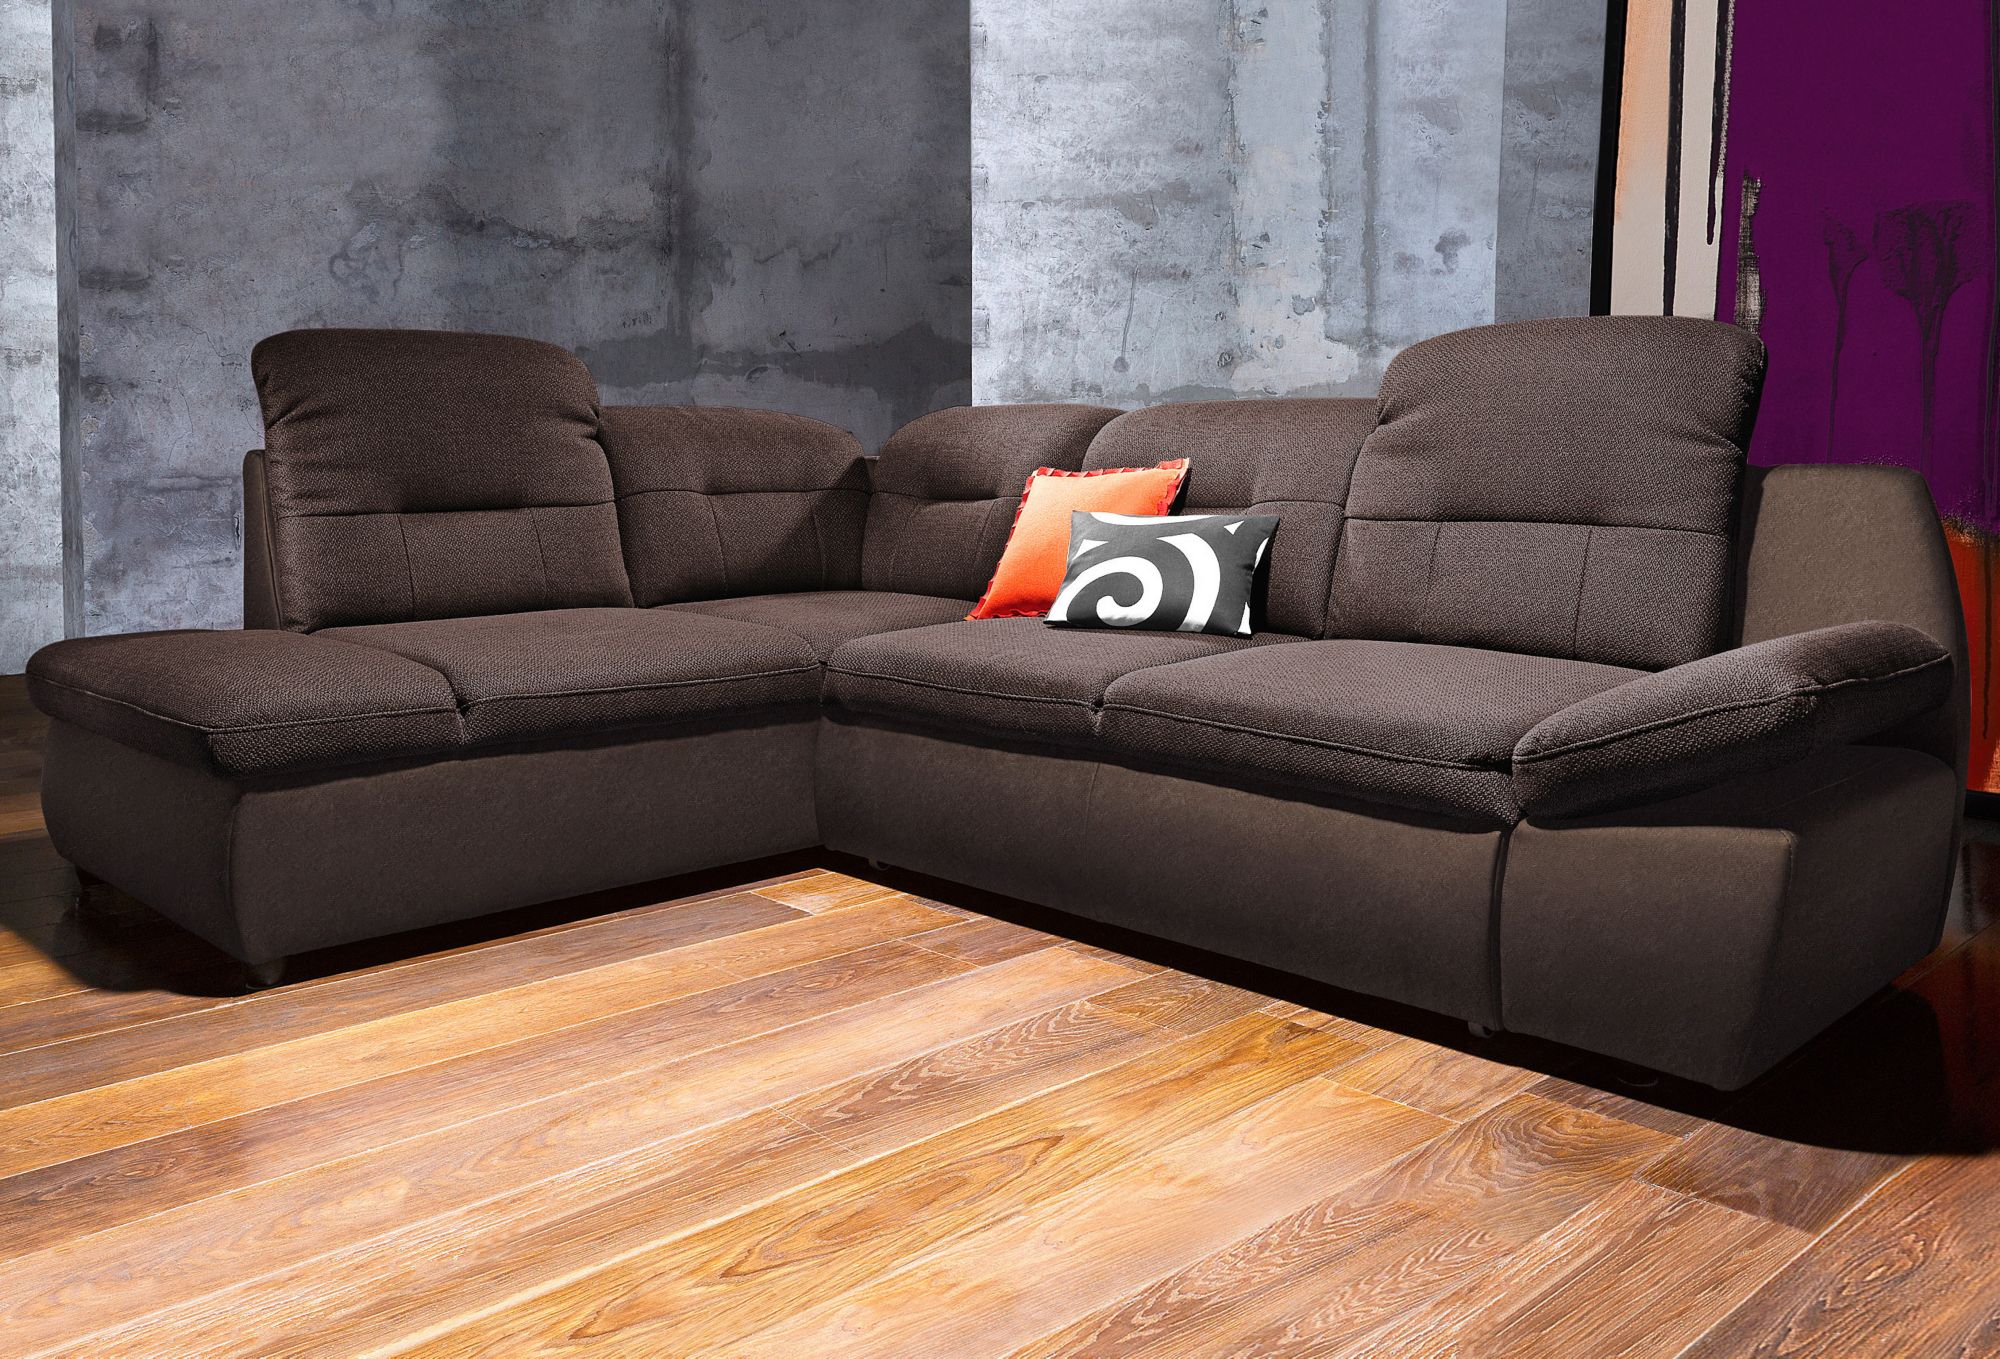 CITY SOFA Polsterecke, City Sofa, wahlweise mit Bettfunktion